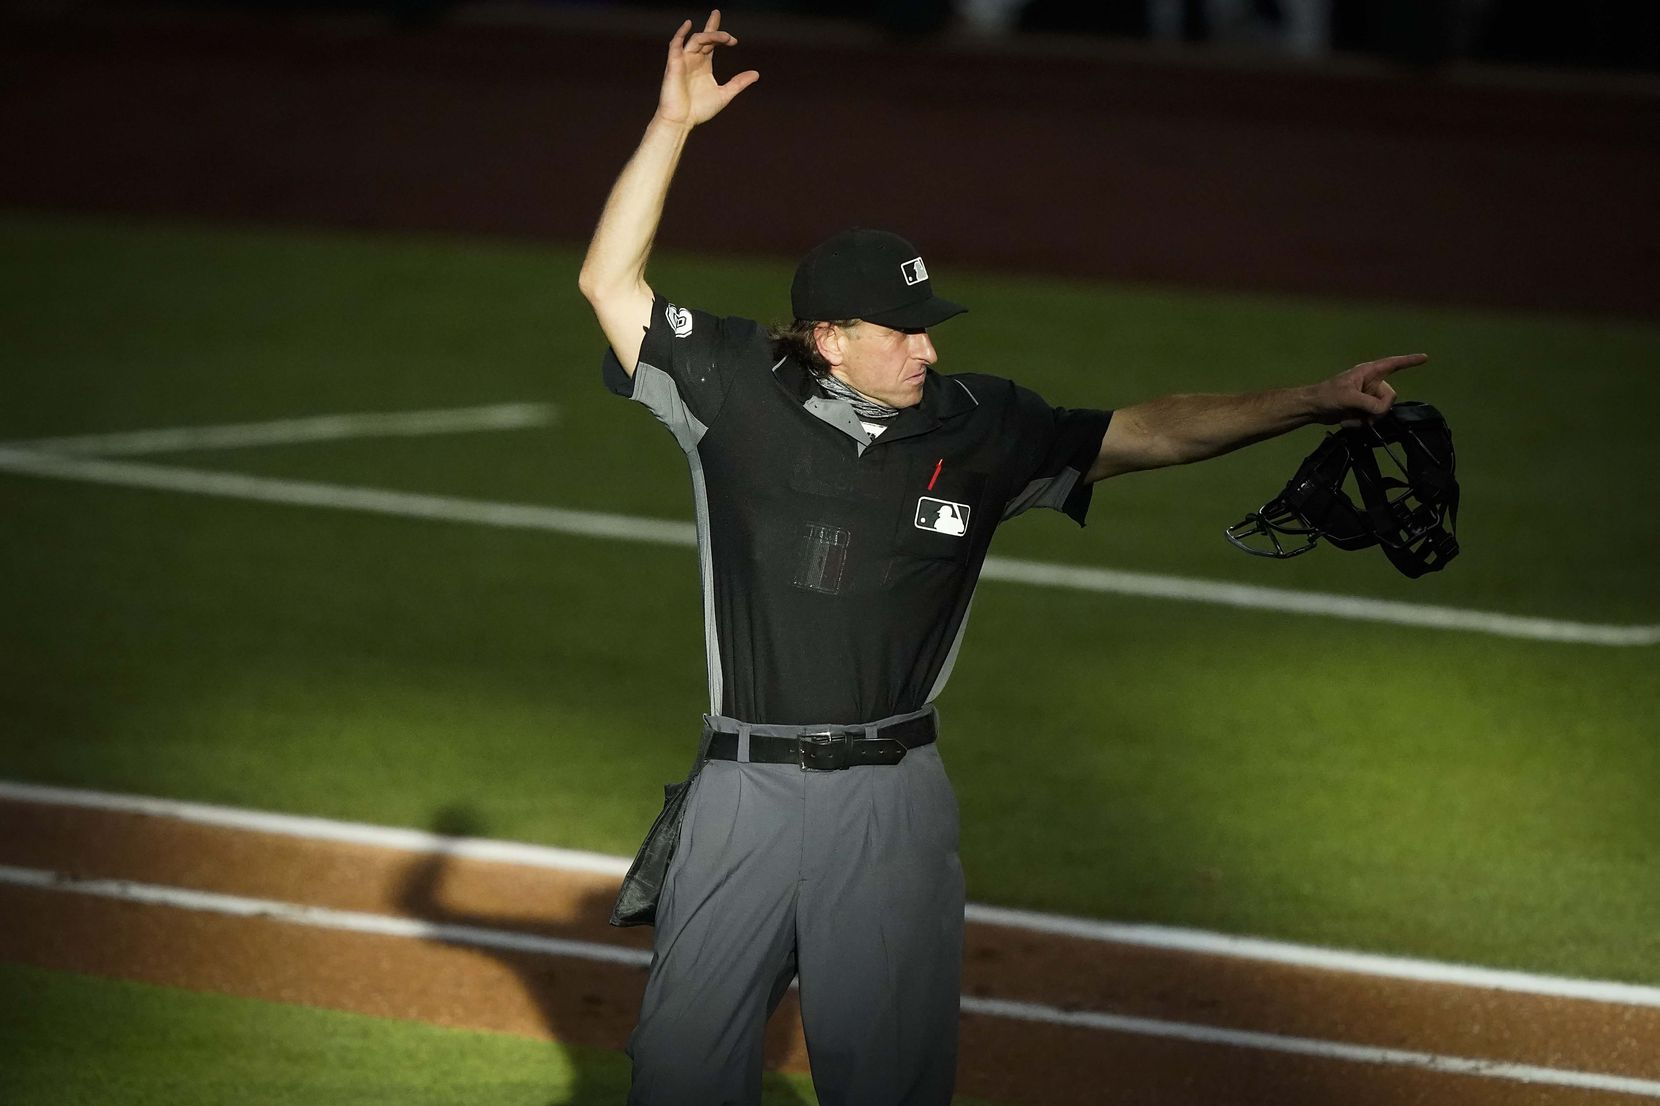 Umpire Chris Guccione signals for the first batter of the second inning of an exhibition game between the Texas Rangers and the Colorado Rockies at Globe Life Field on Wednesday, July 22, 2020.